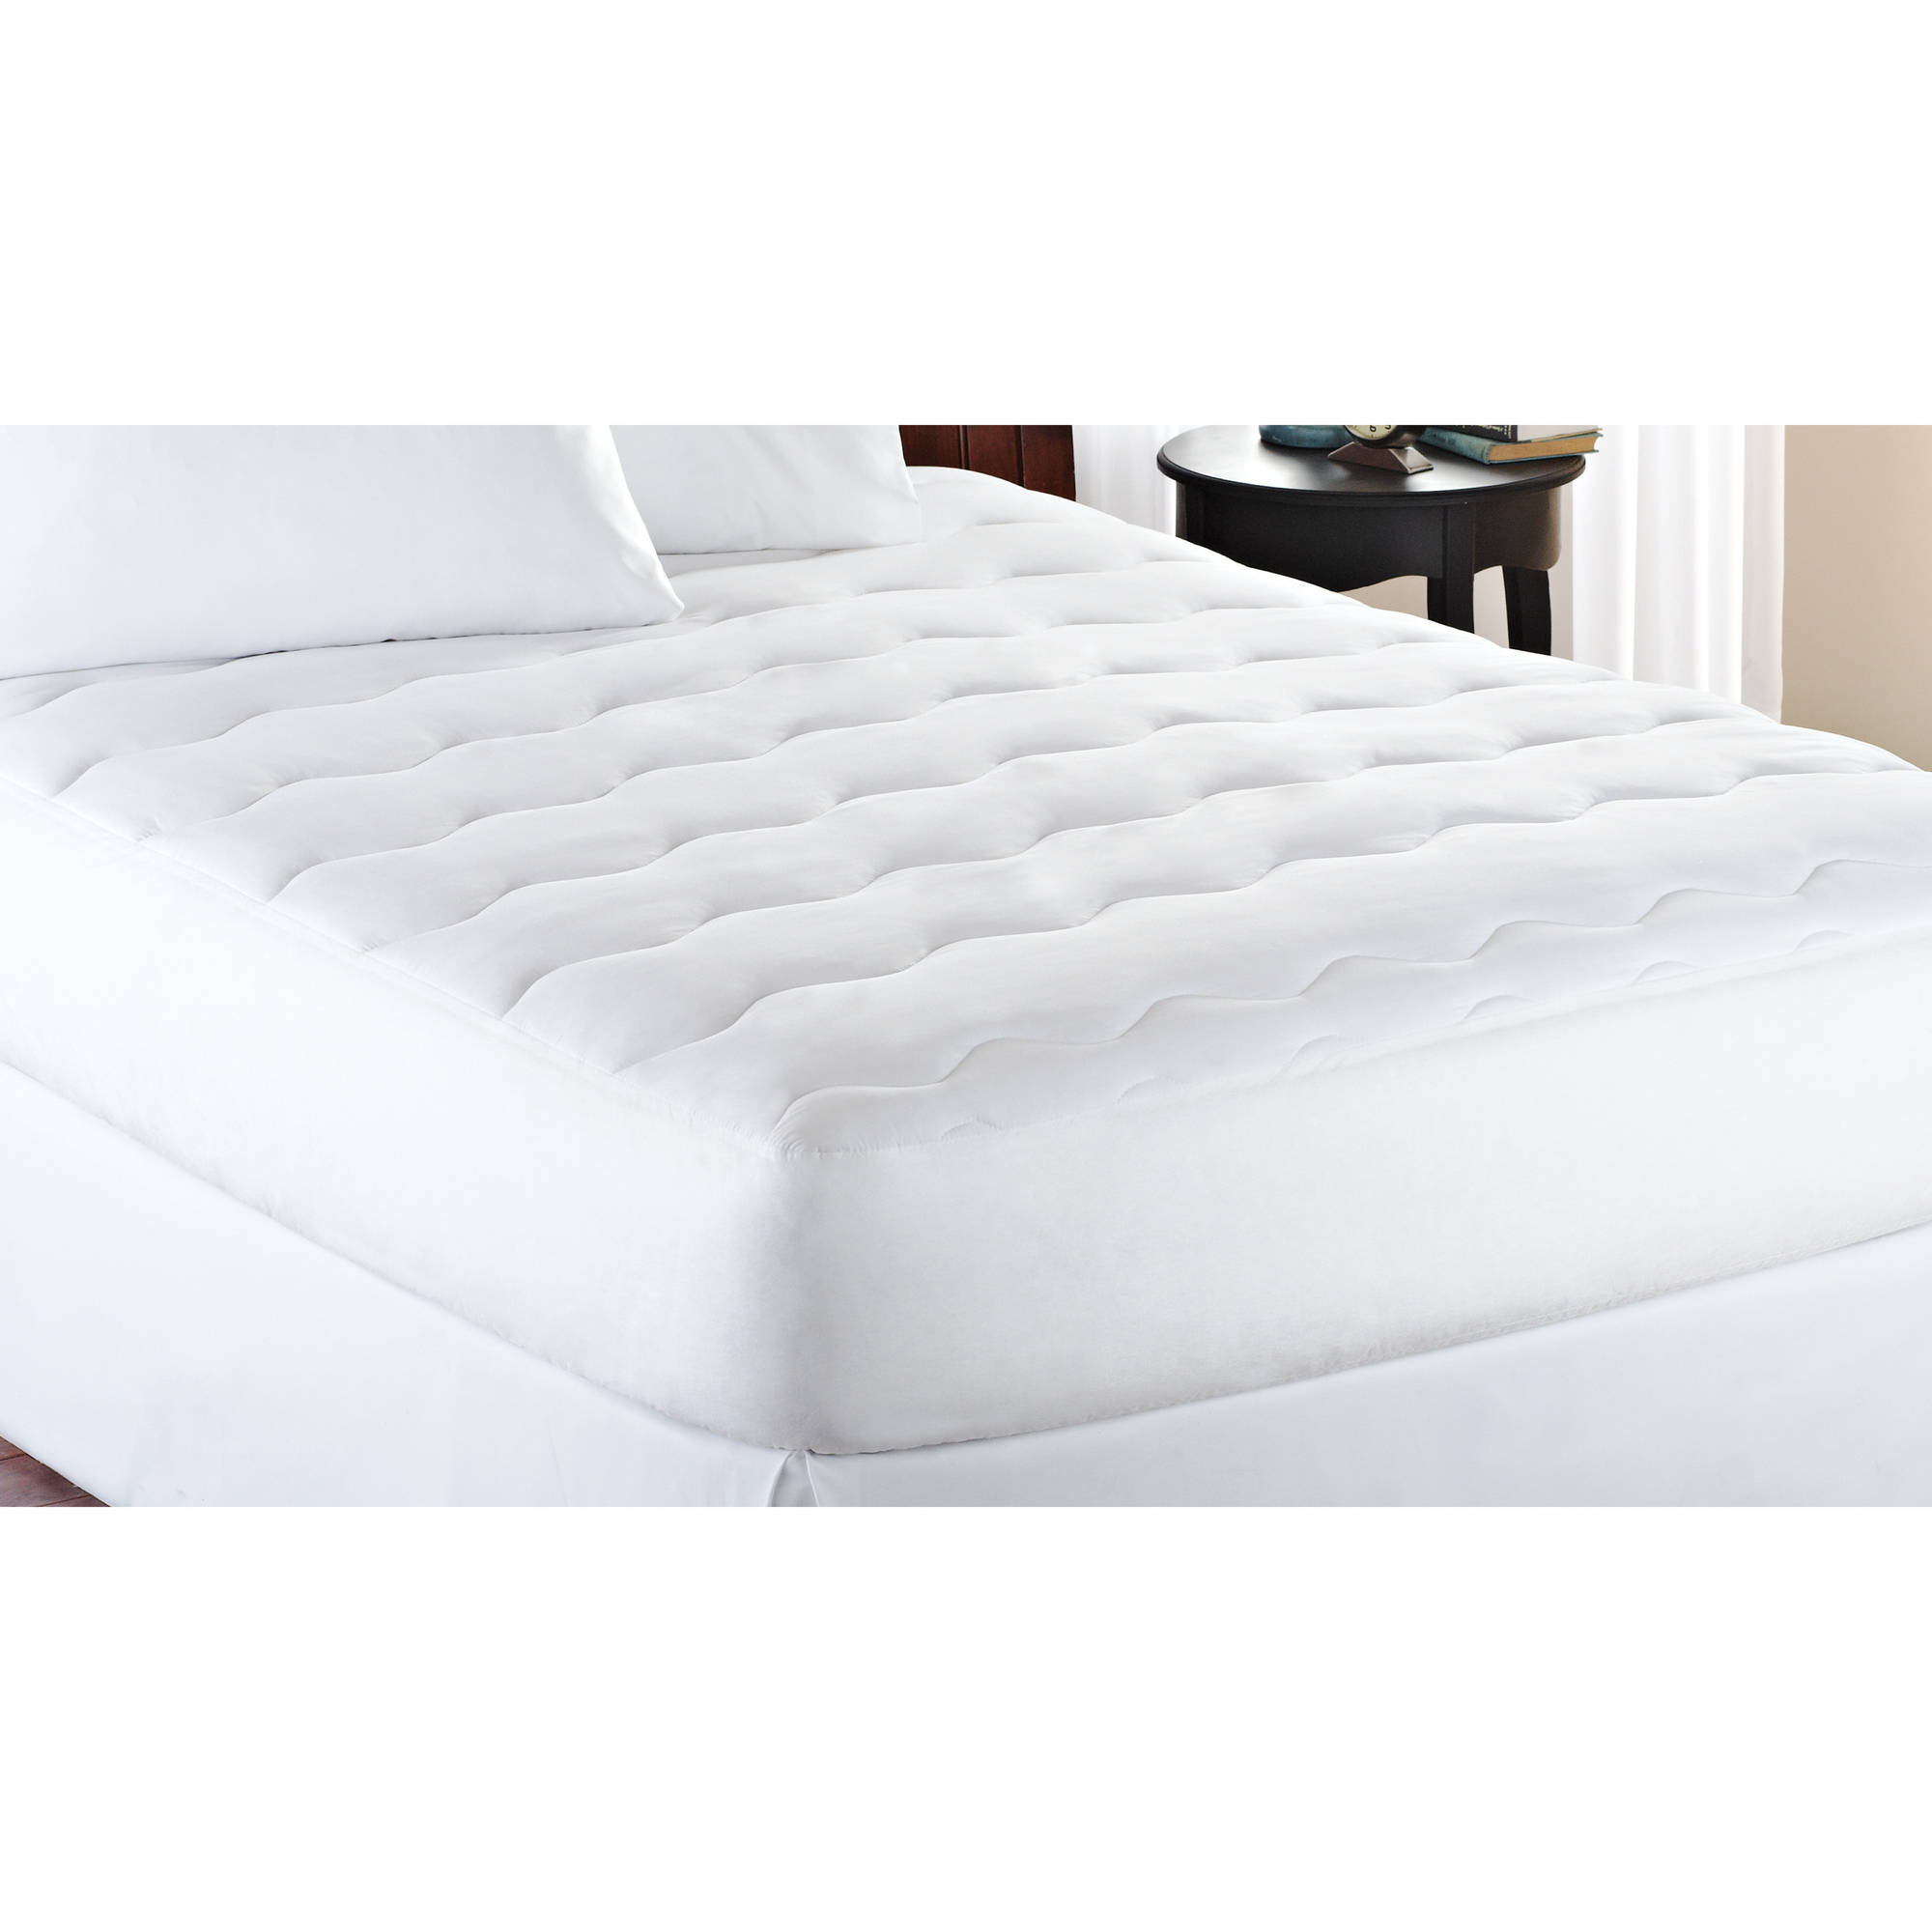 "Mainstays Extra Thick 1"" Mattress Pad in Multiple Sizes by Hollander Sleep Products, LLC."